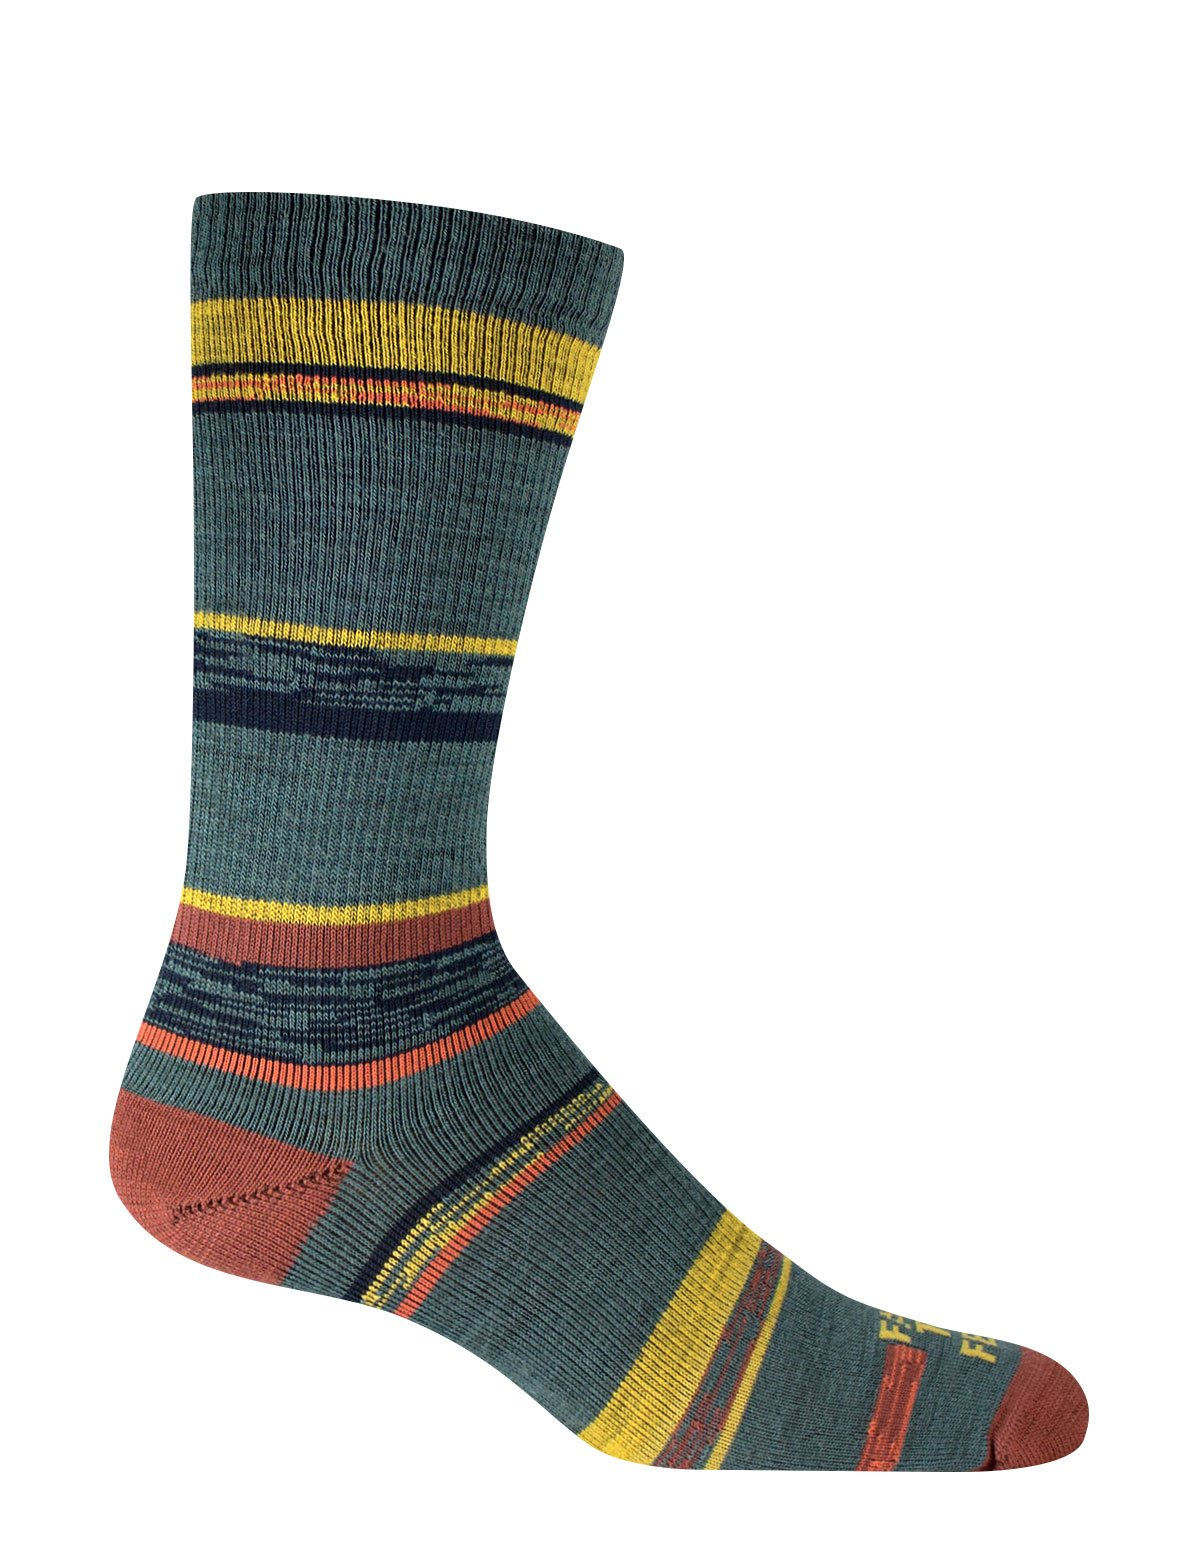 Farm to Feet Sock now sold at 88 Gear.